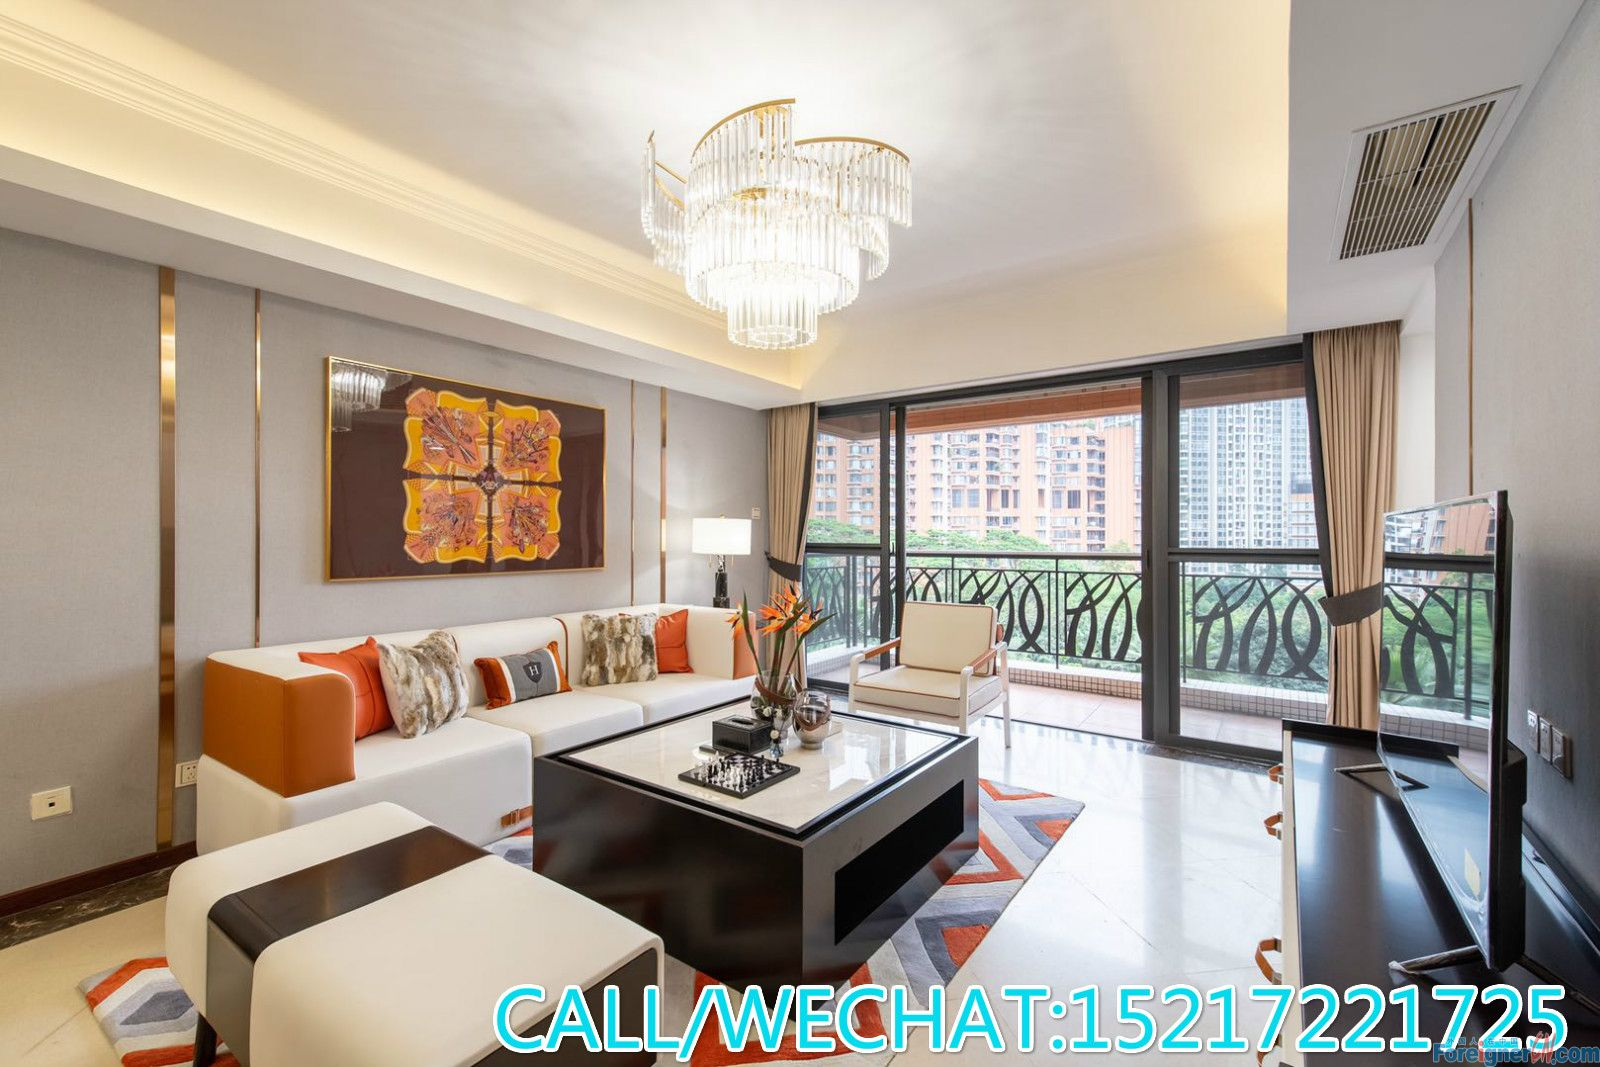 Luxurious decorate,large compound,living here is like a vacation.brand new.CBD area.